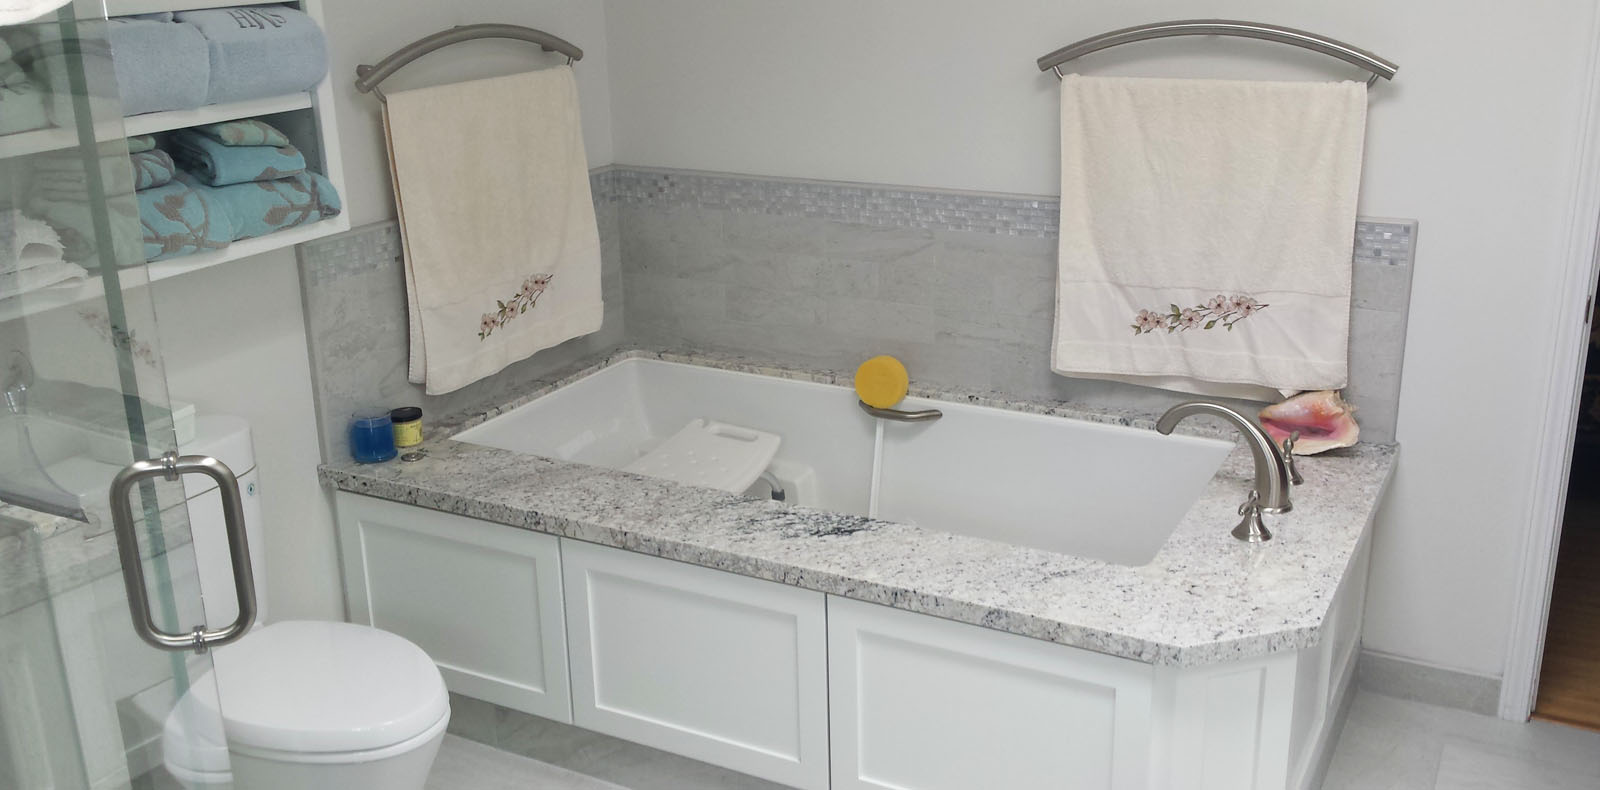 Remodeling Contractor Fort Collins CO Degnan Construction LLC - Bathroom remodel fort collins